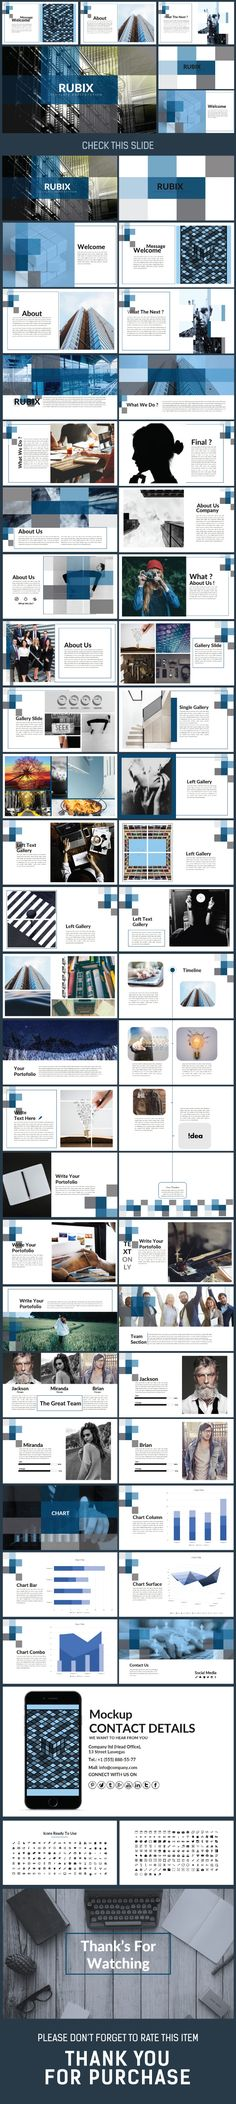 RUBIX - Presentation PowerPoint Template